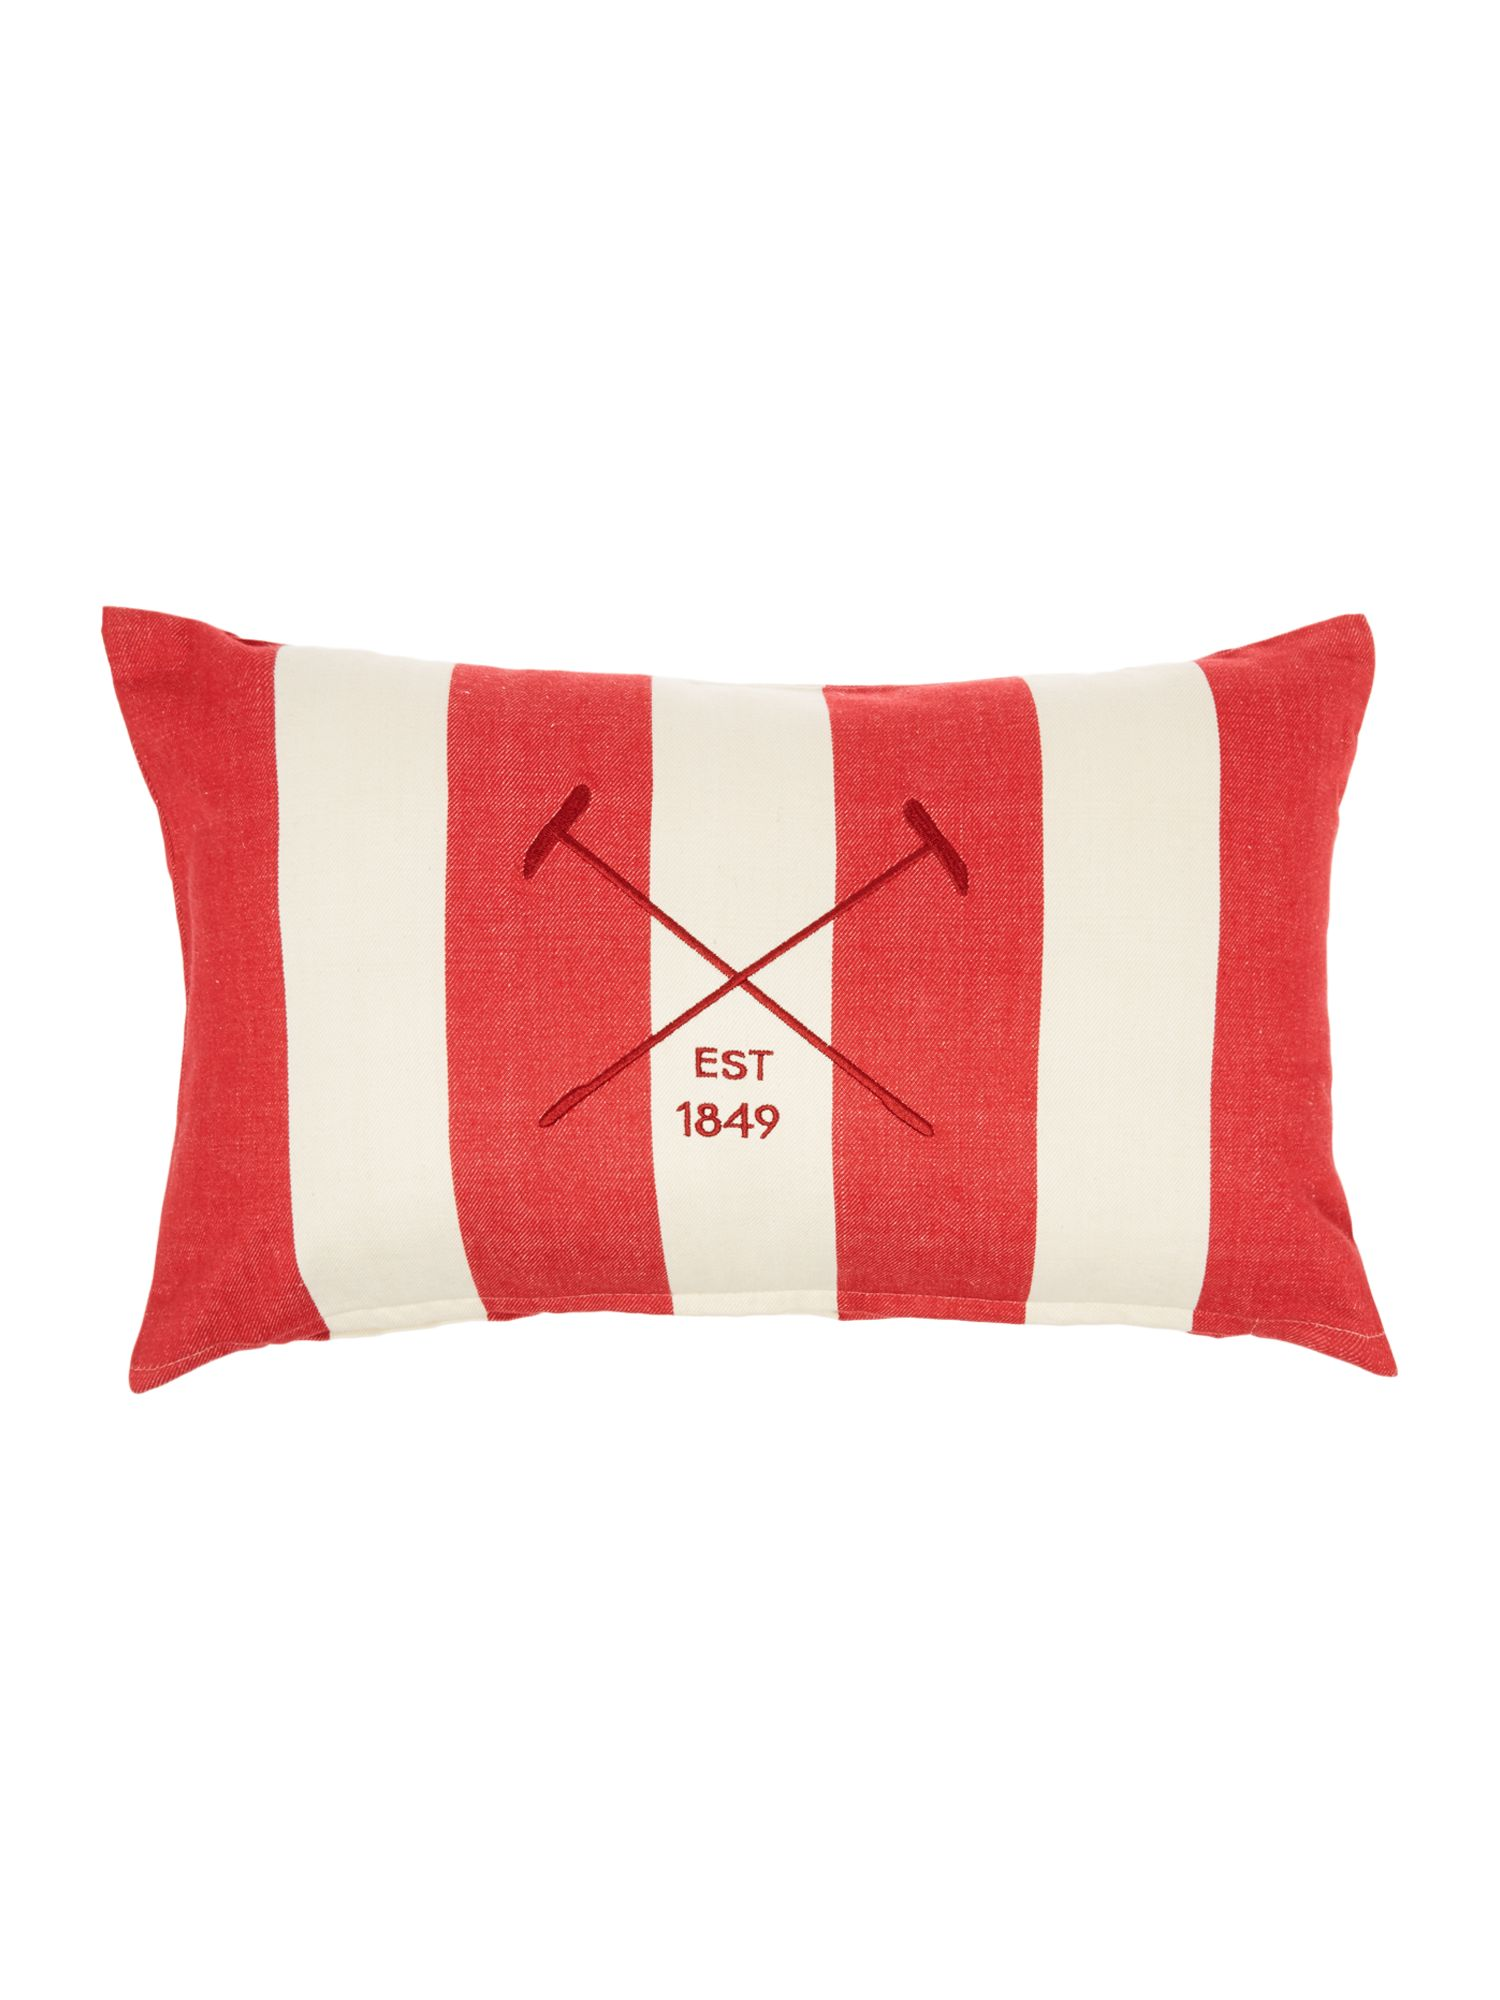 house of fraser linea embroidered logo red striped cushion. Black Bedroom Furniture Sets. Home Design Ideas